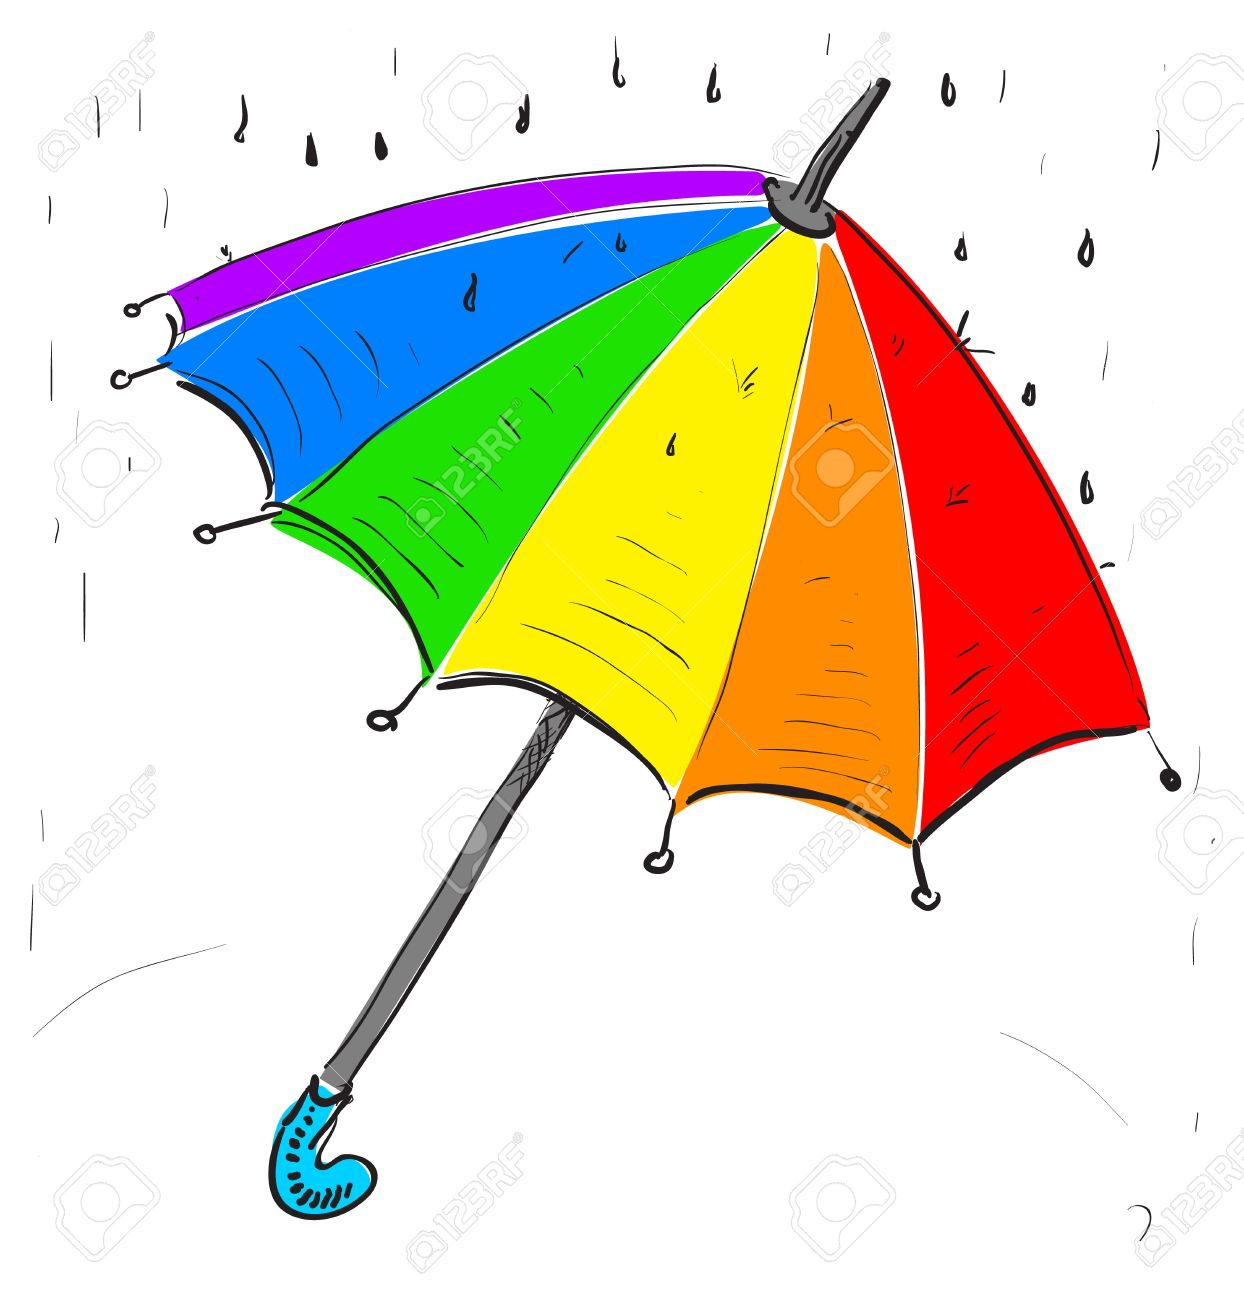 Drawn umbrella cartoon Rainbow The Rain clipart umbrella